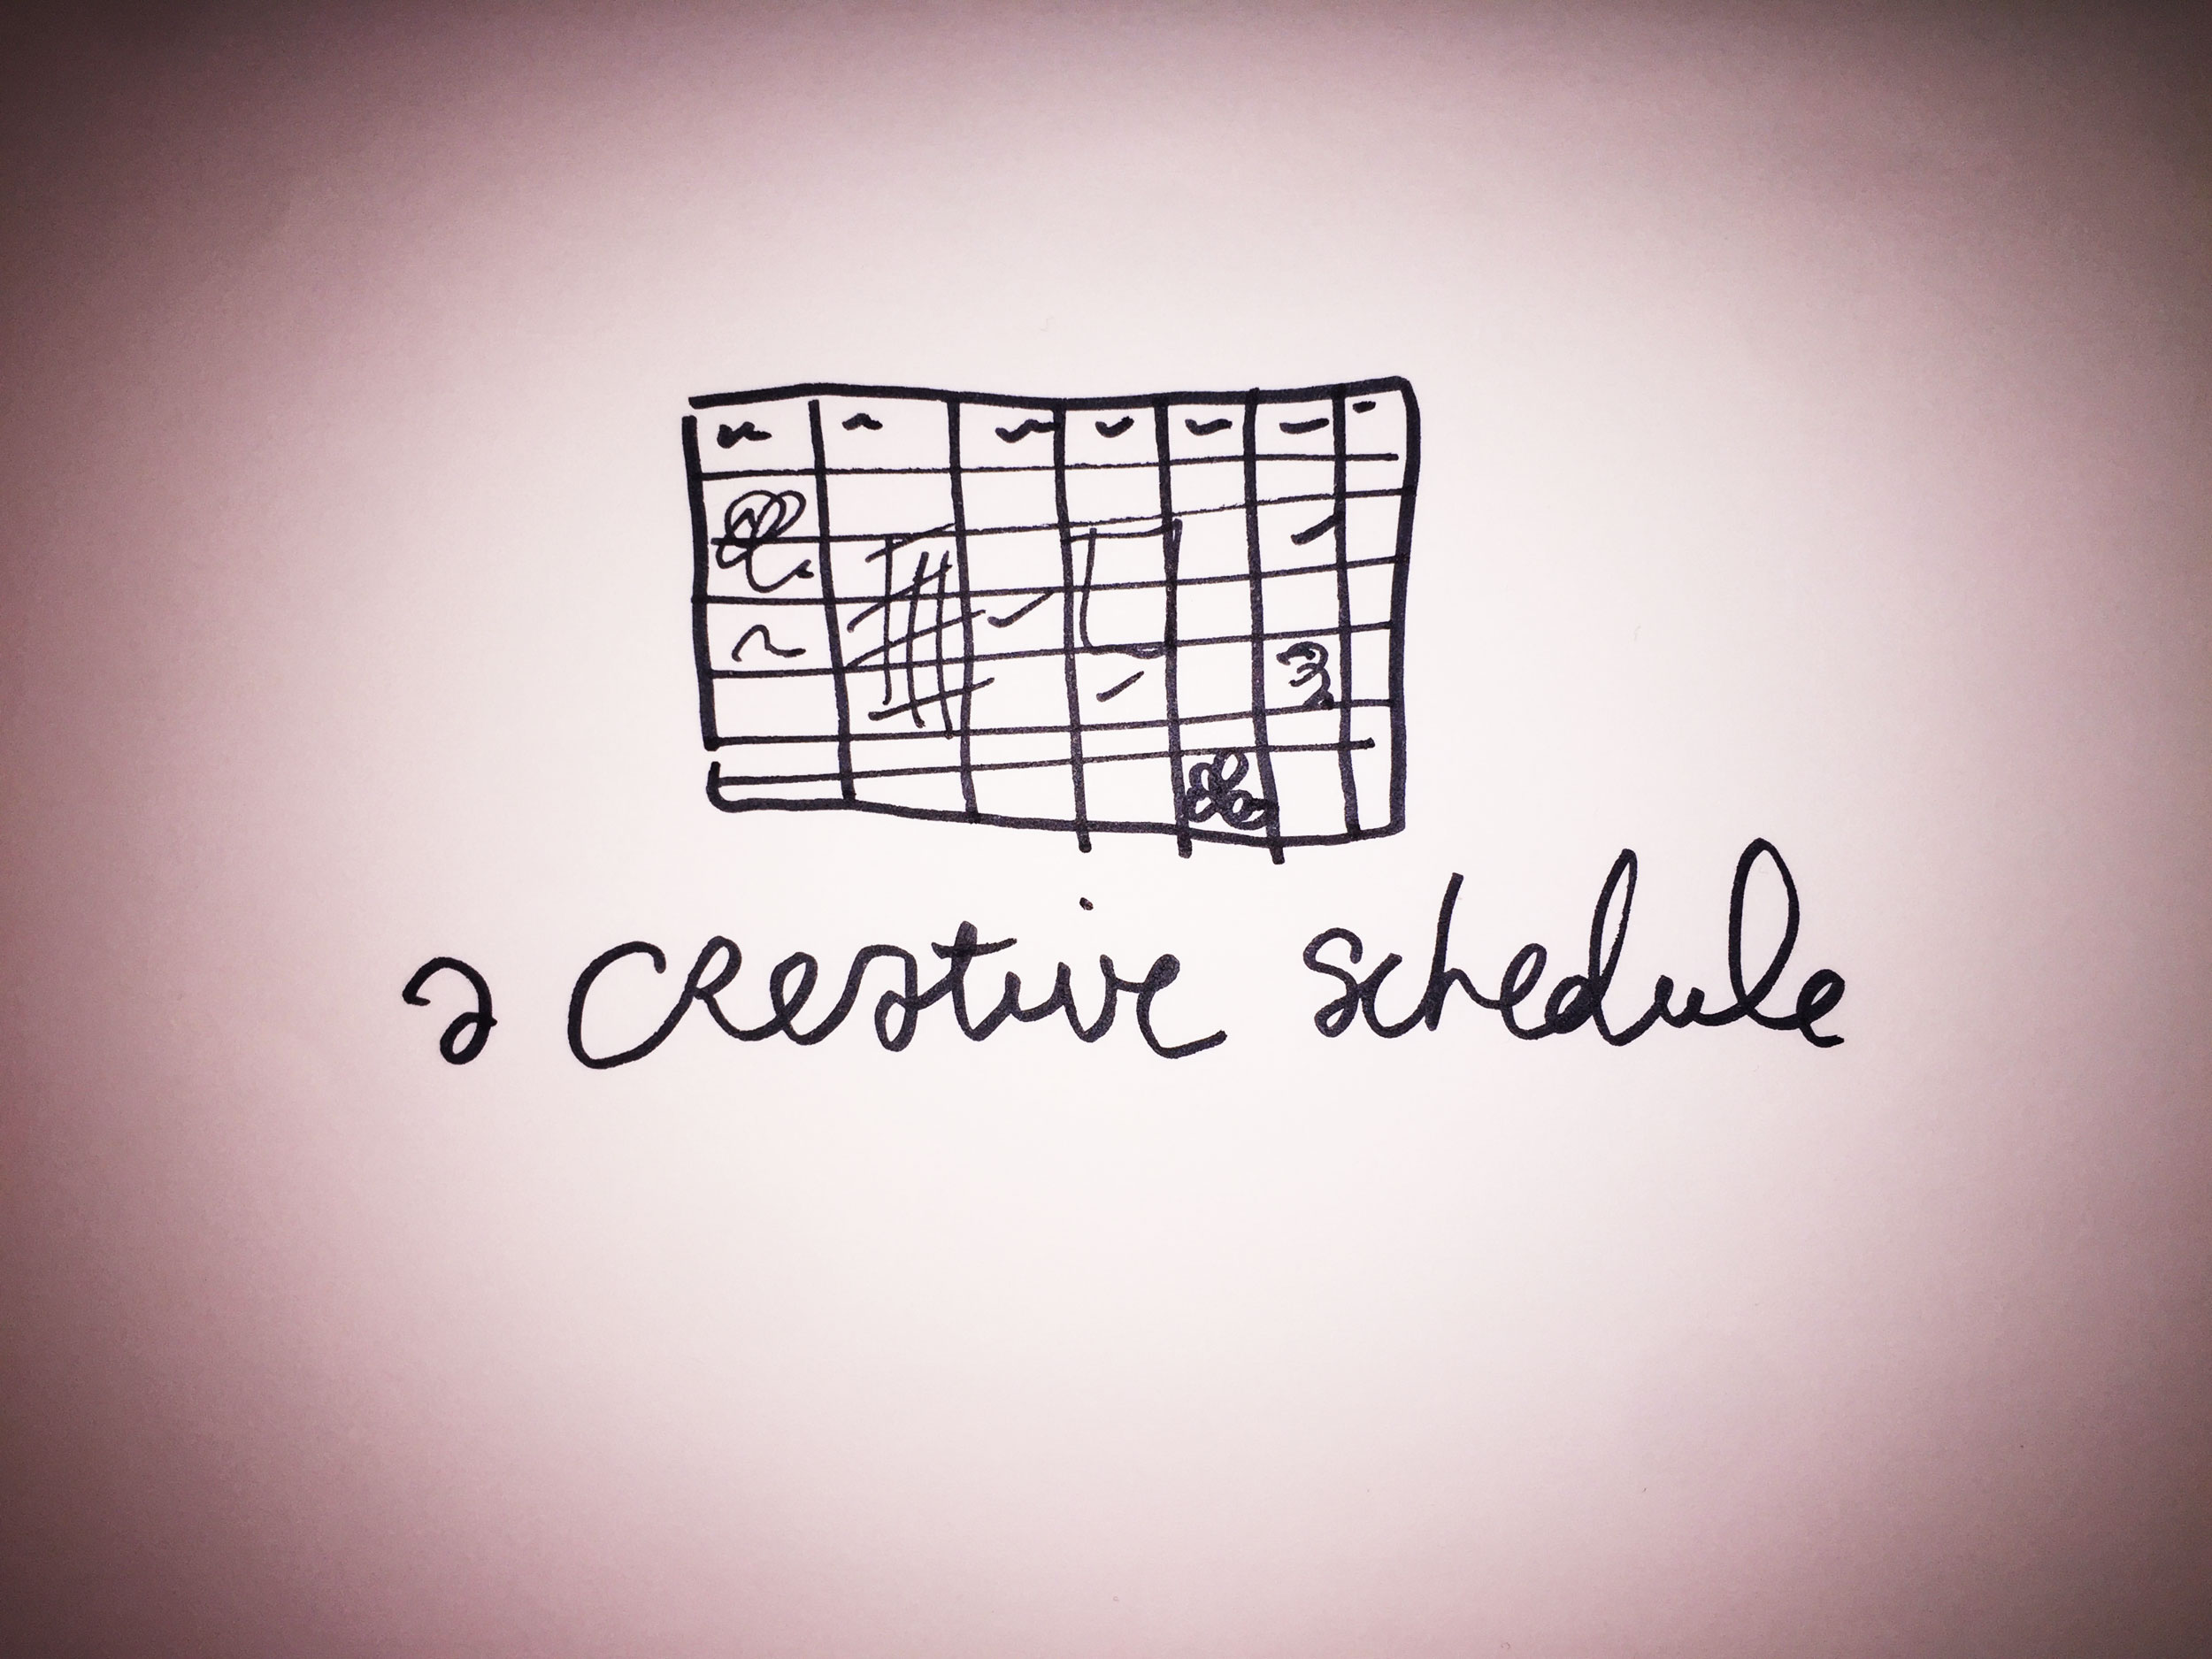 A creative schedule. Drawing Luke Hockley.